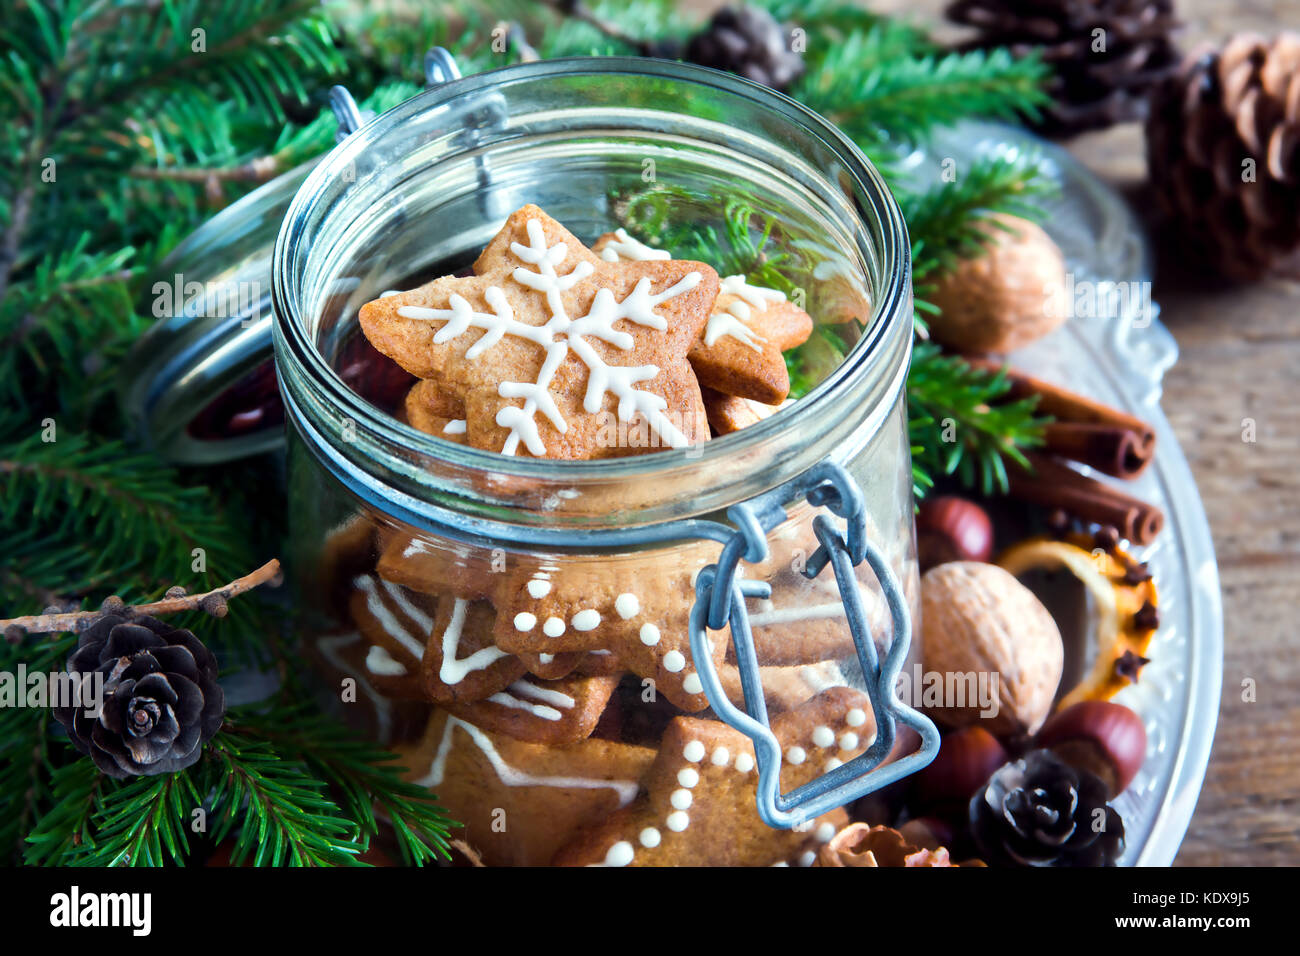 Gingerbread Christmas cookies stars in the glass jar with fir branches, Christmas spices and decor close up Stock Photo